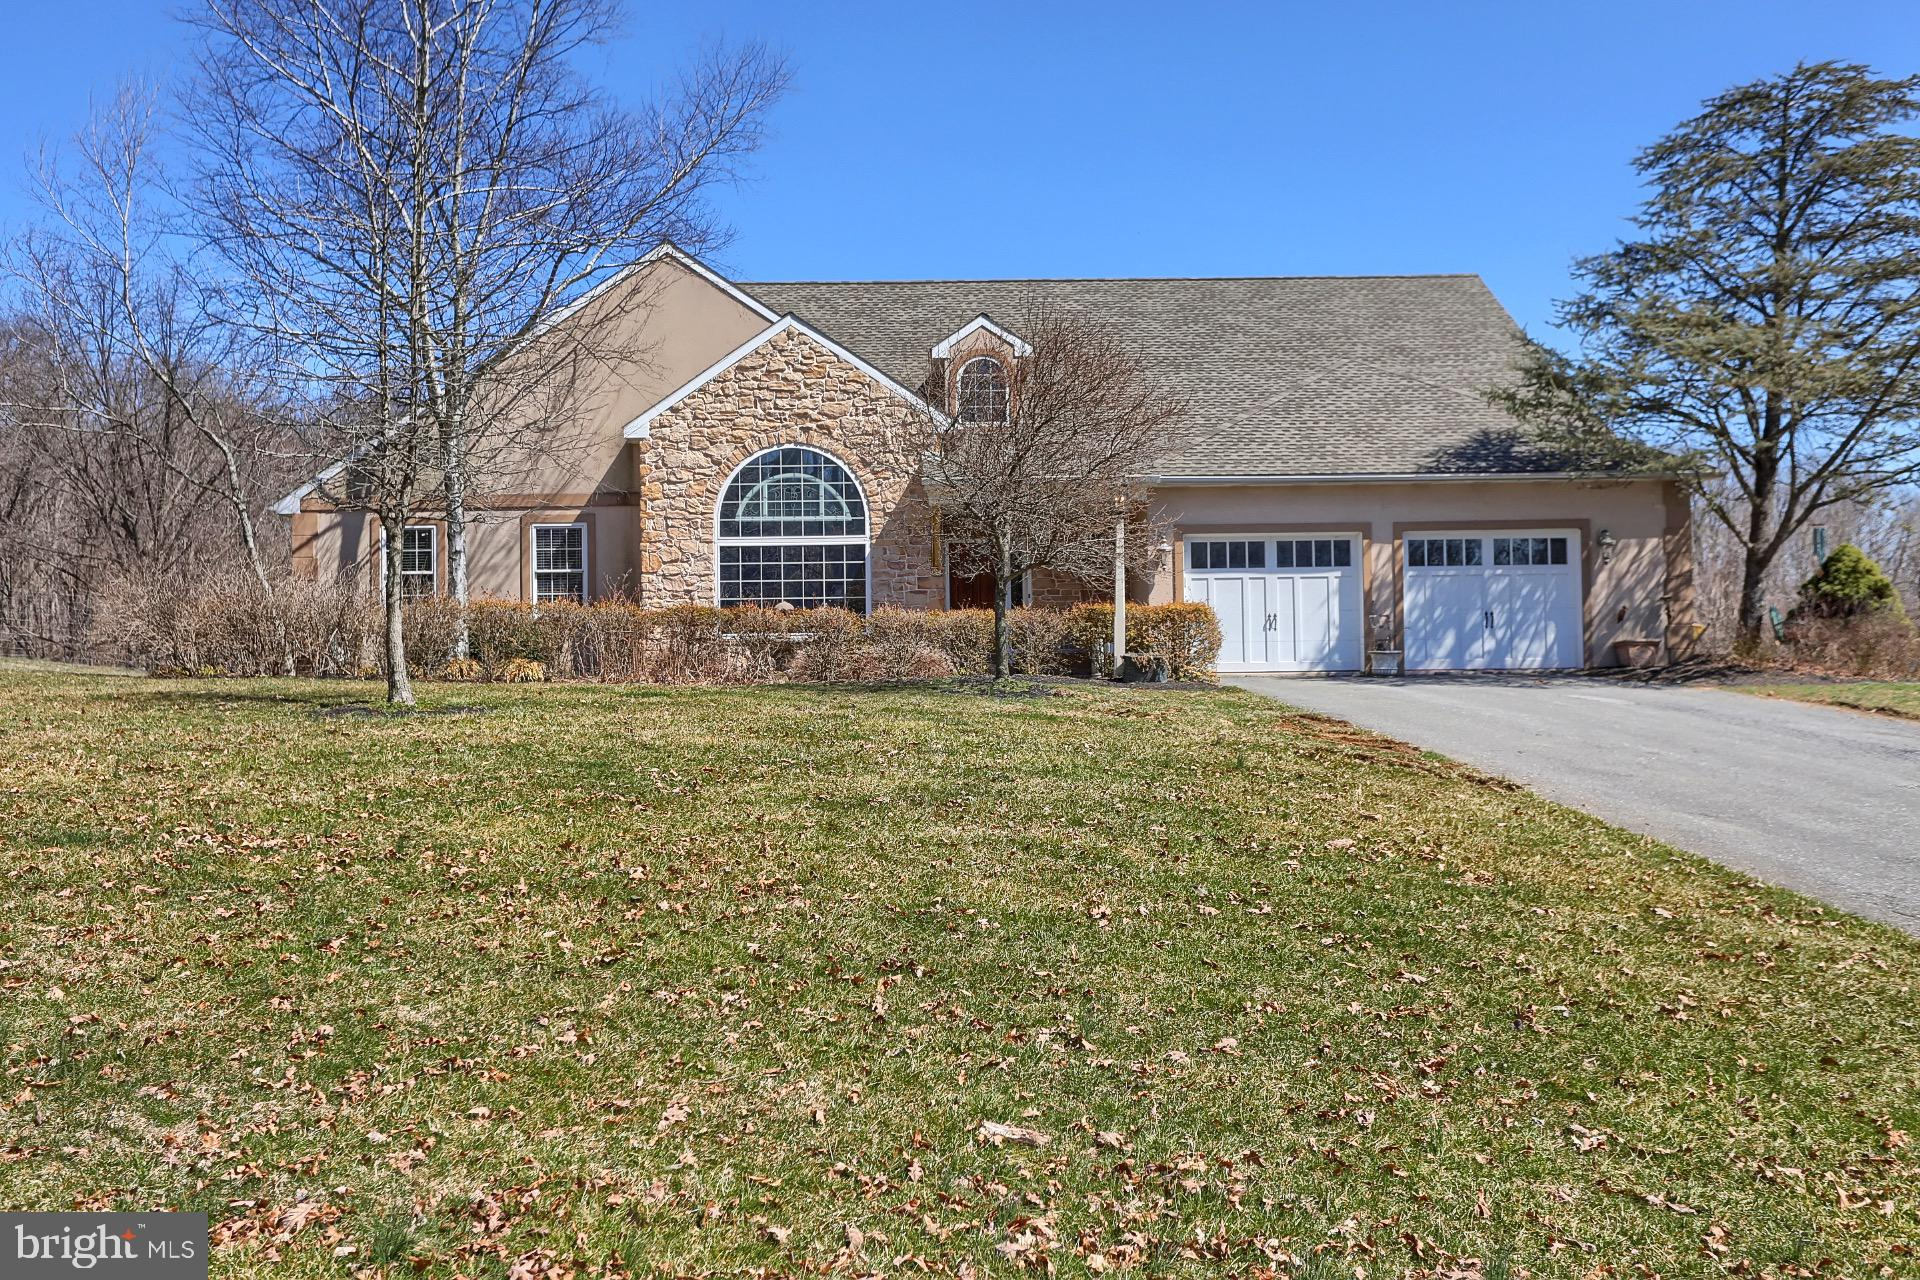 1043 RICK ROAD, READING, PA 19605